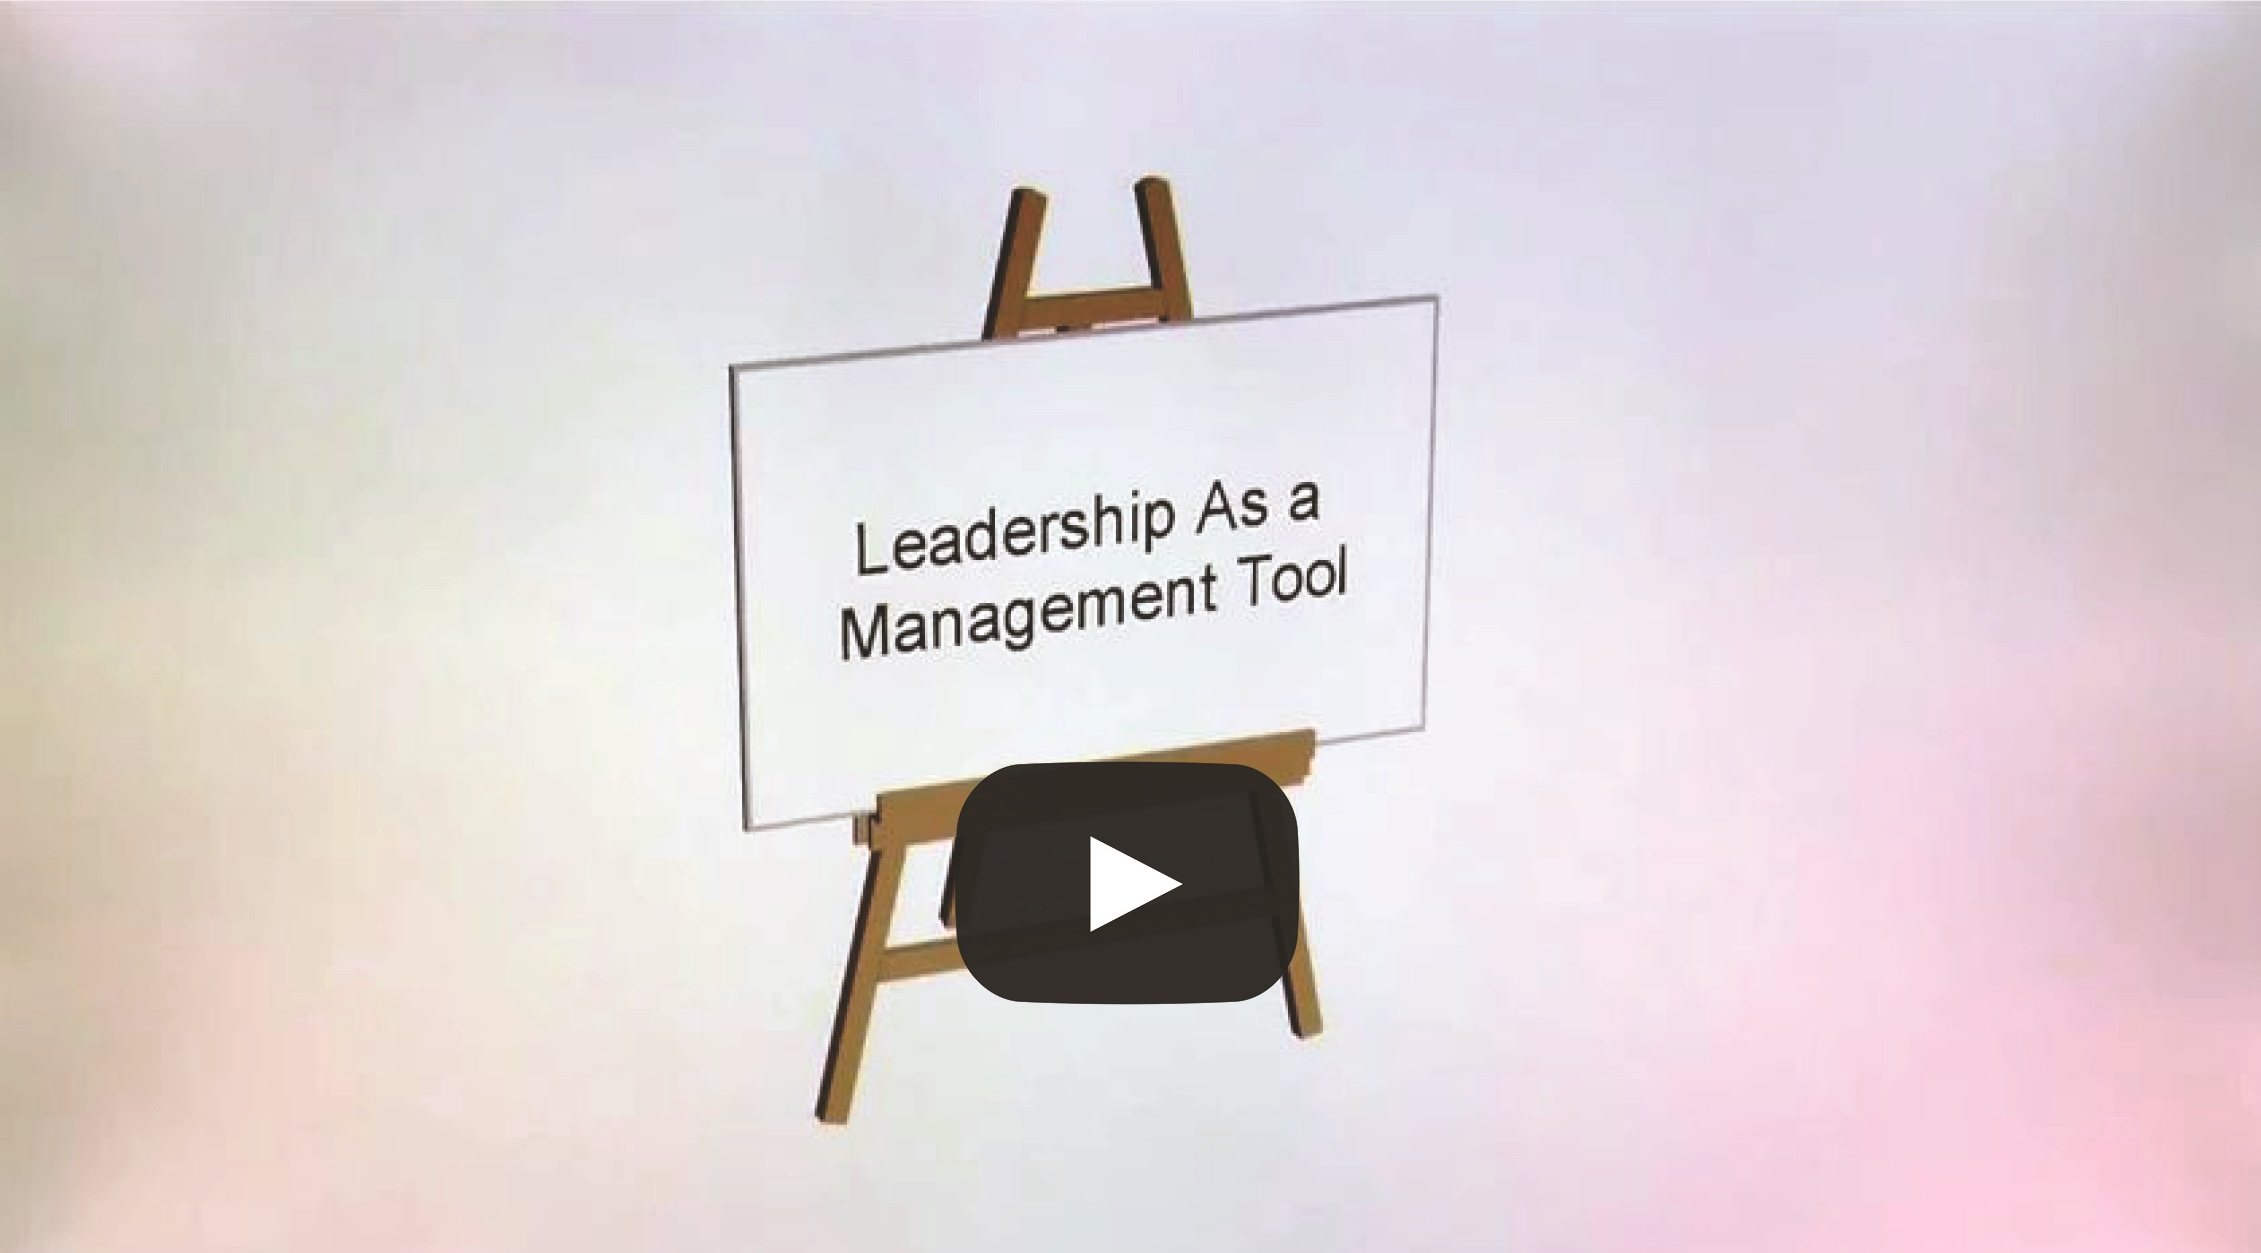 Leadership As a Management Tool